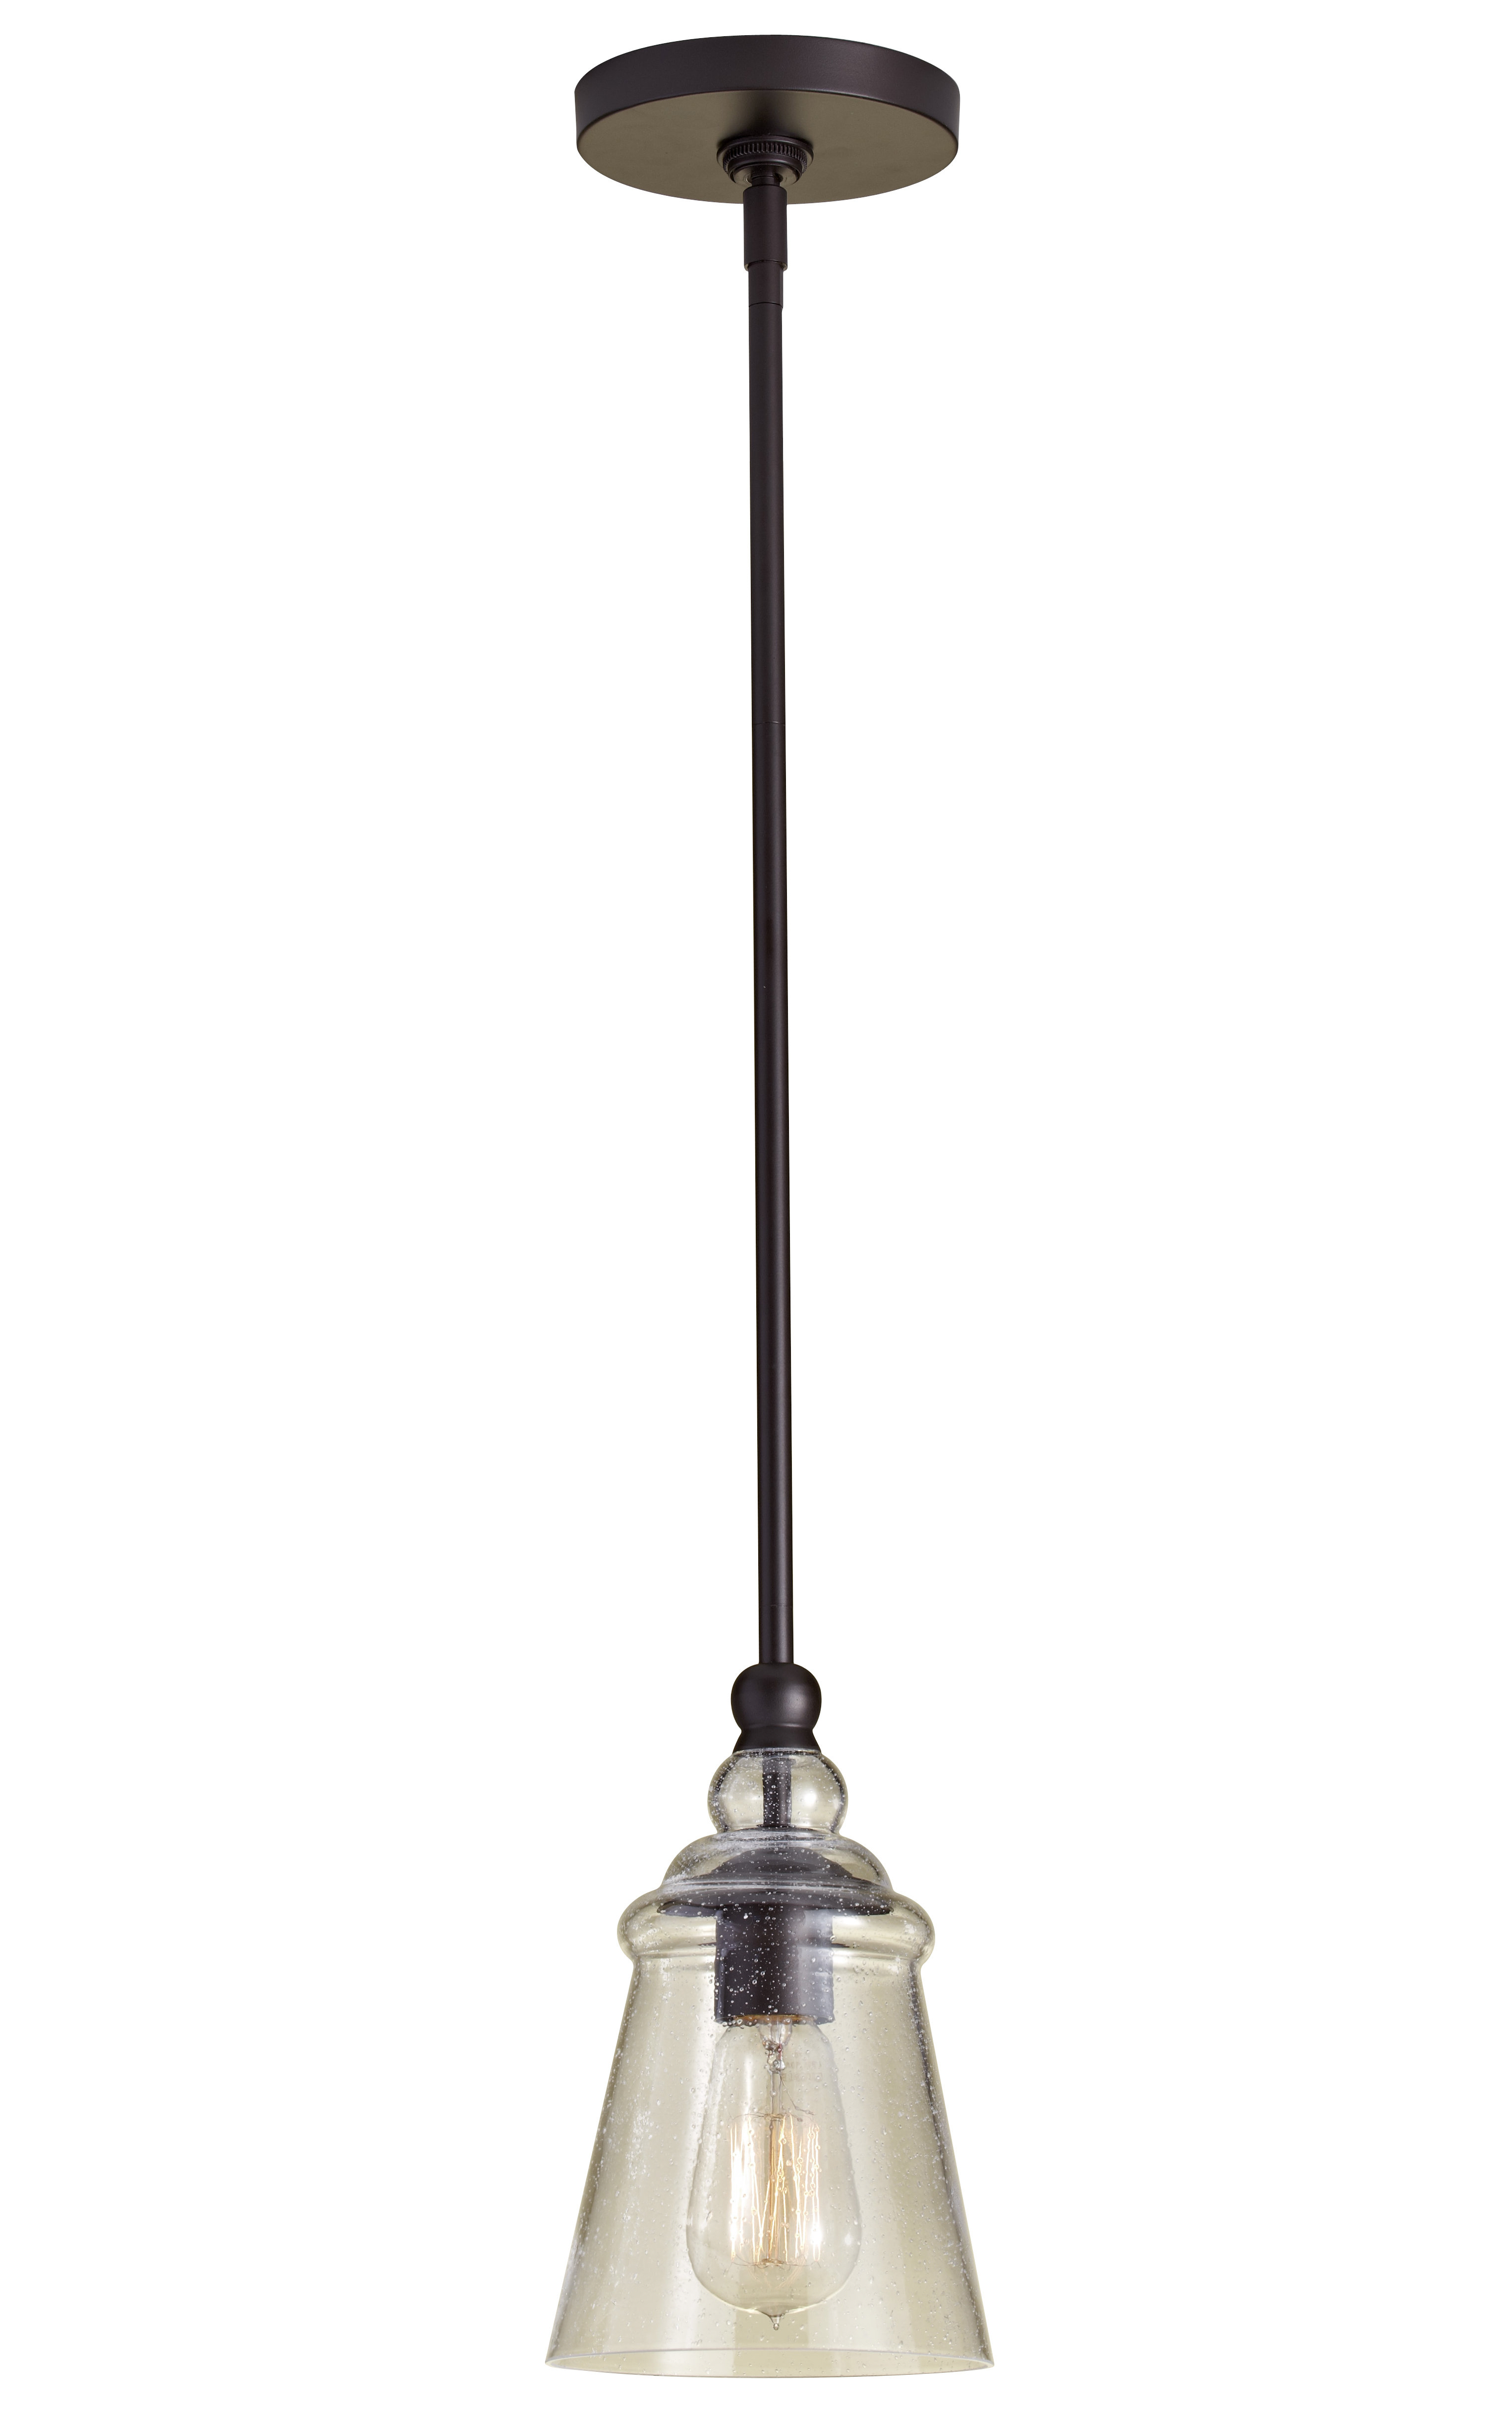 Most Recent Erico 1 Light Single Bell Pendants Pertaining To Sargent 1 Light Single Bell Pendant (View 14 of 20)